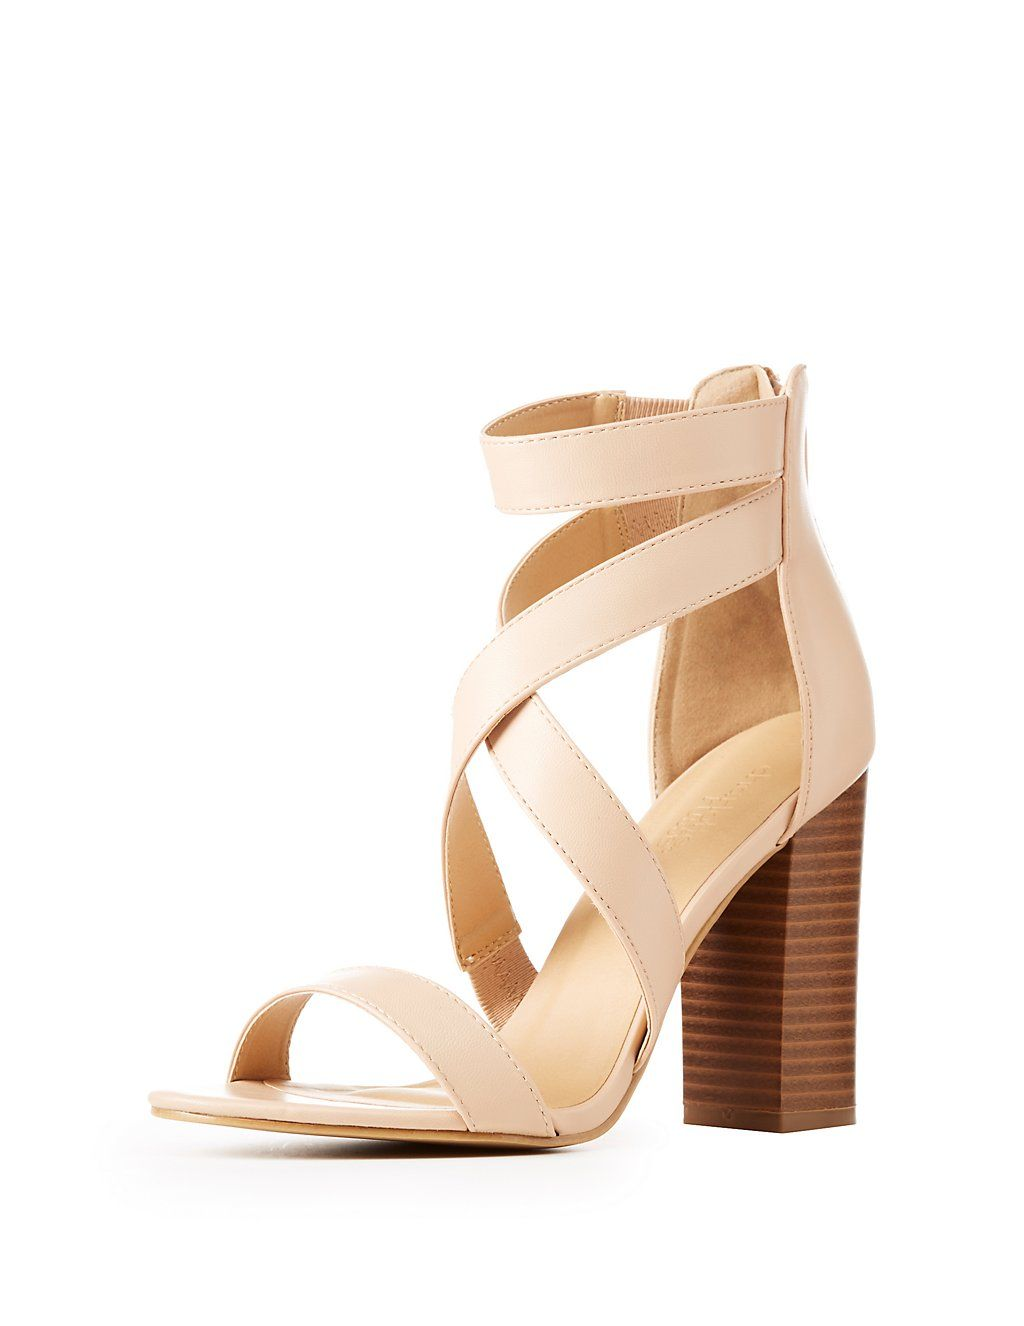 7c278b556ec Caged Block Heel Sandals | Charlotte Russe | Fashion | Heels, Block ...